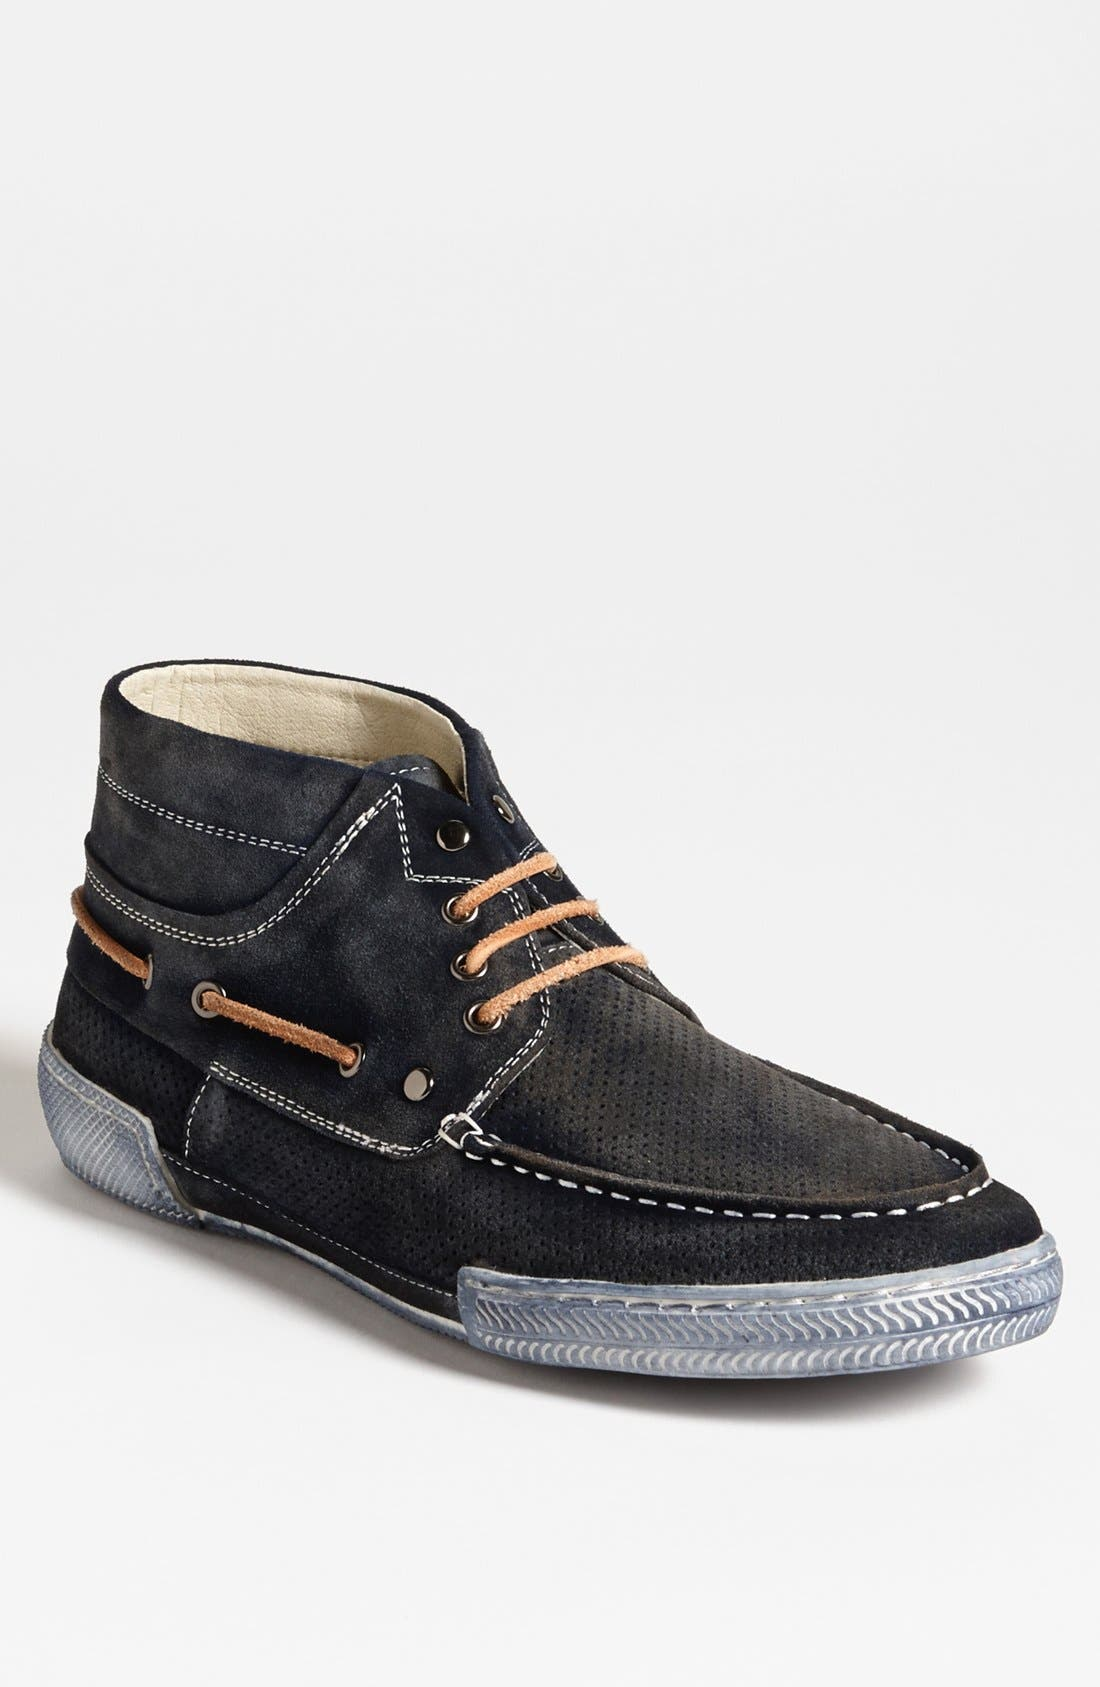 Alternate Image 1 Selected - Rogue 'Trouble Maker' Chukka Boot